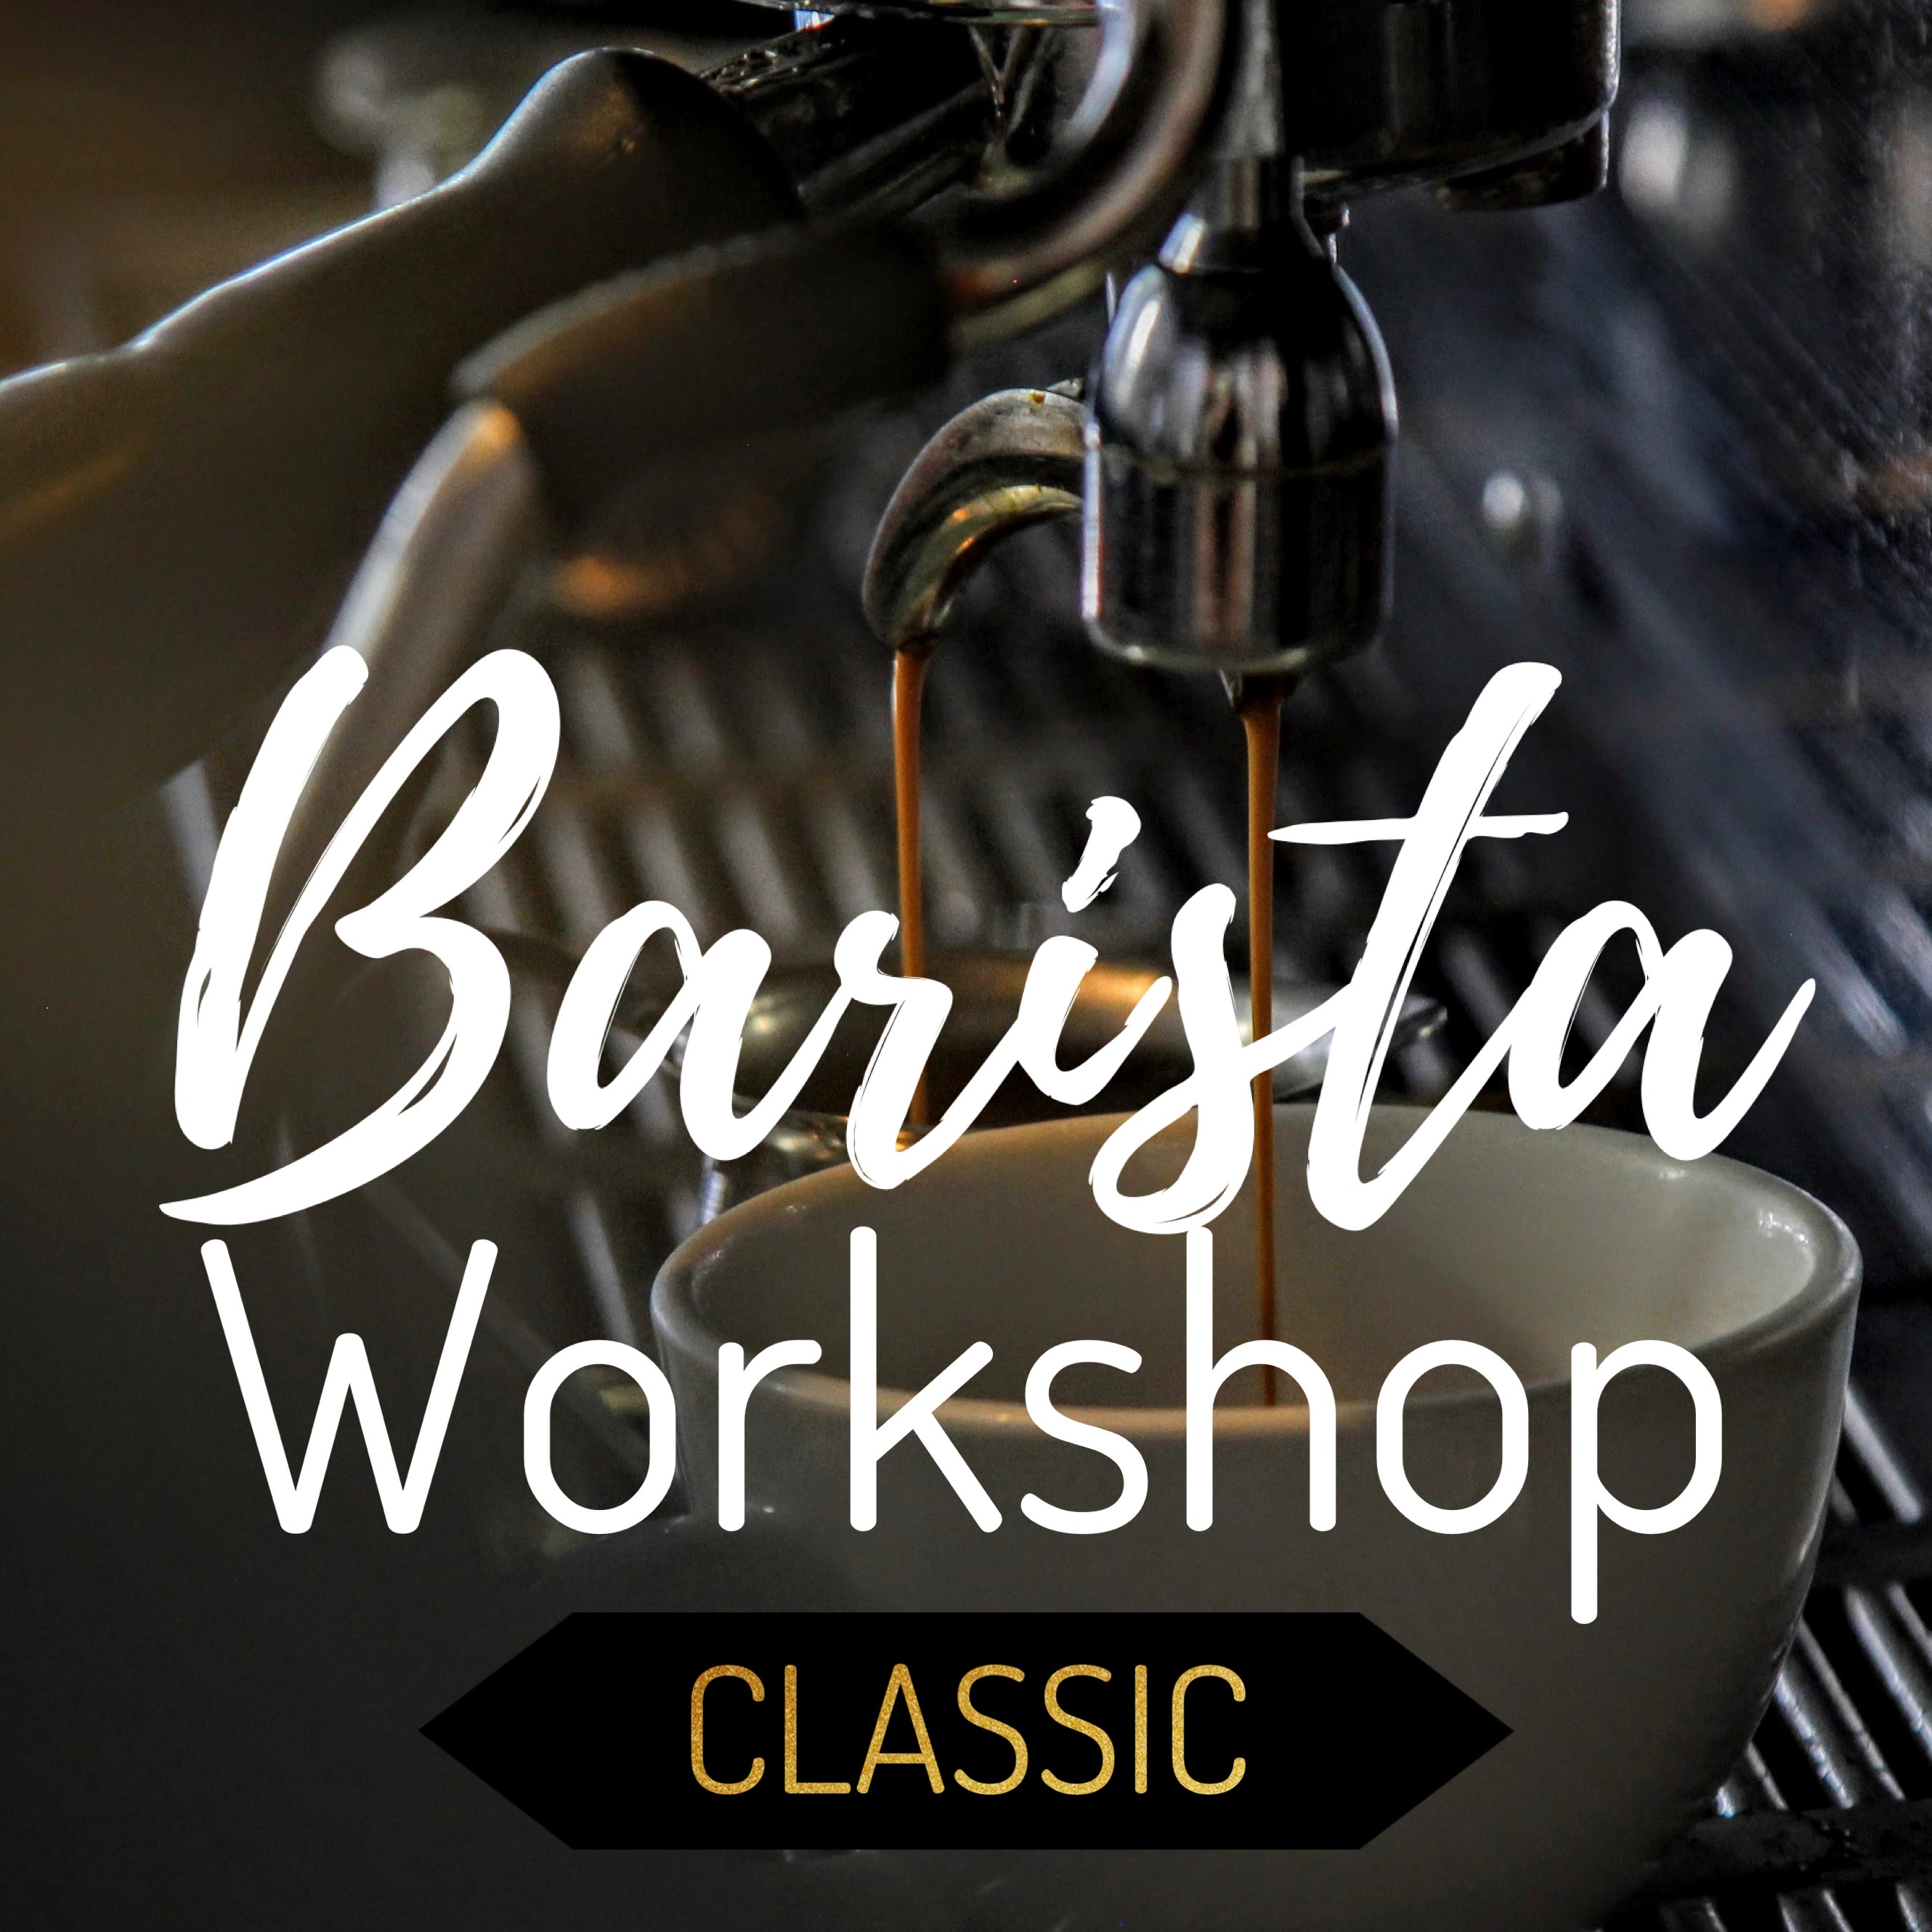 Barista Workshop Classic